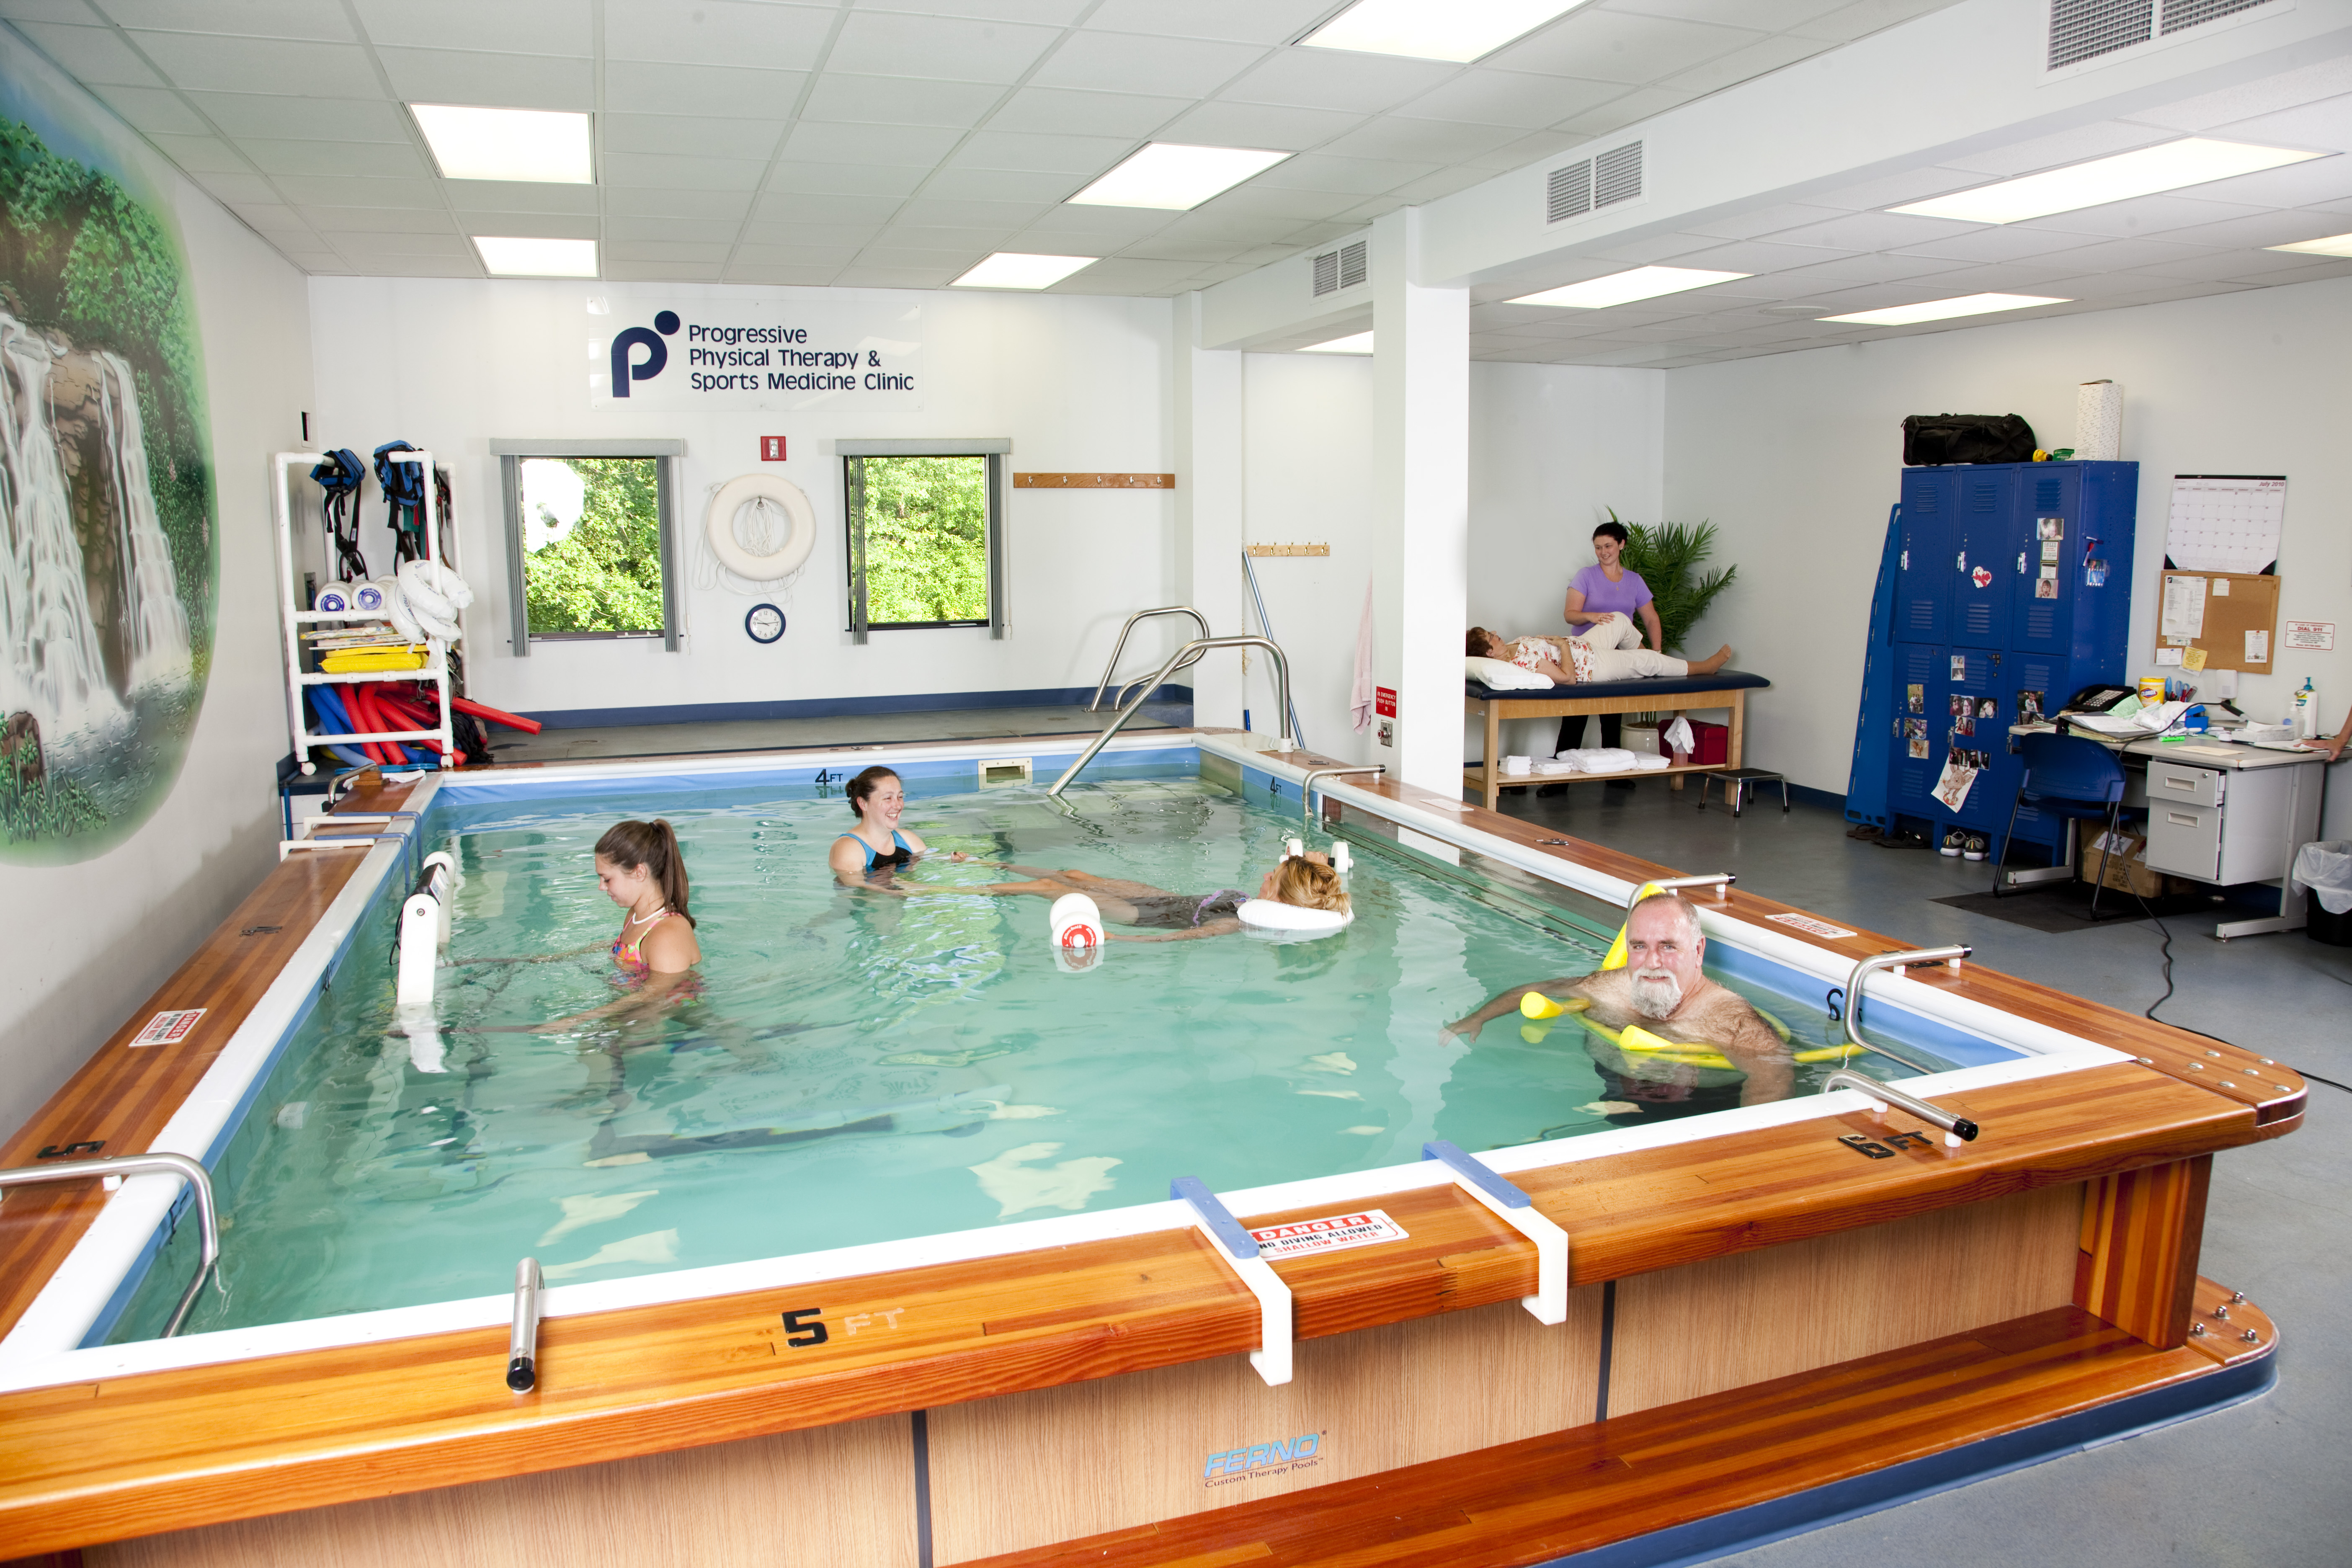 PPT-Aquatic-Therapy_10.jpg